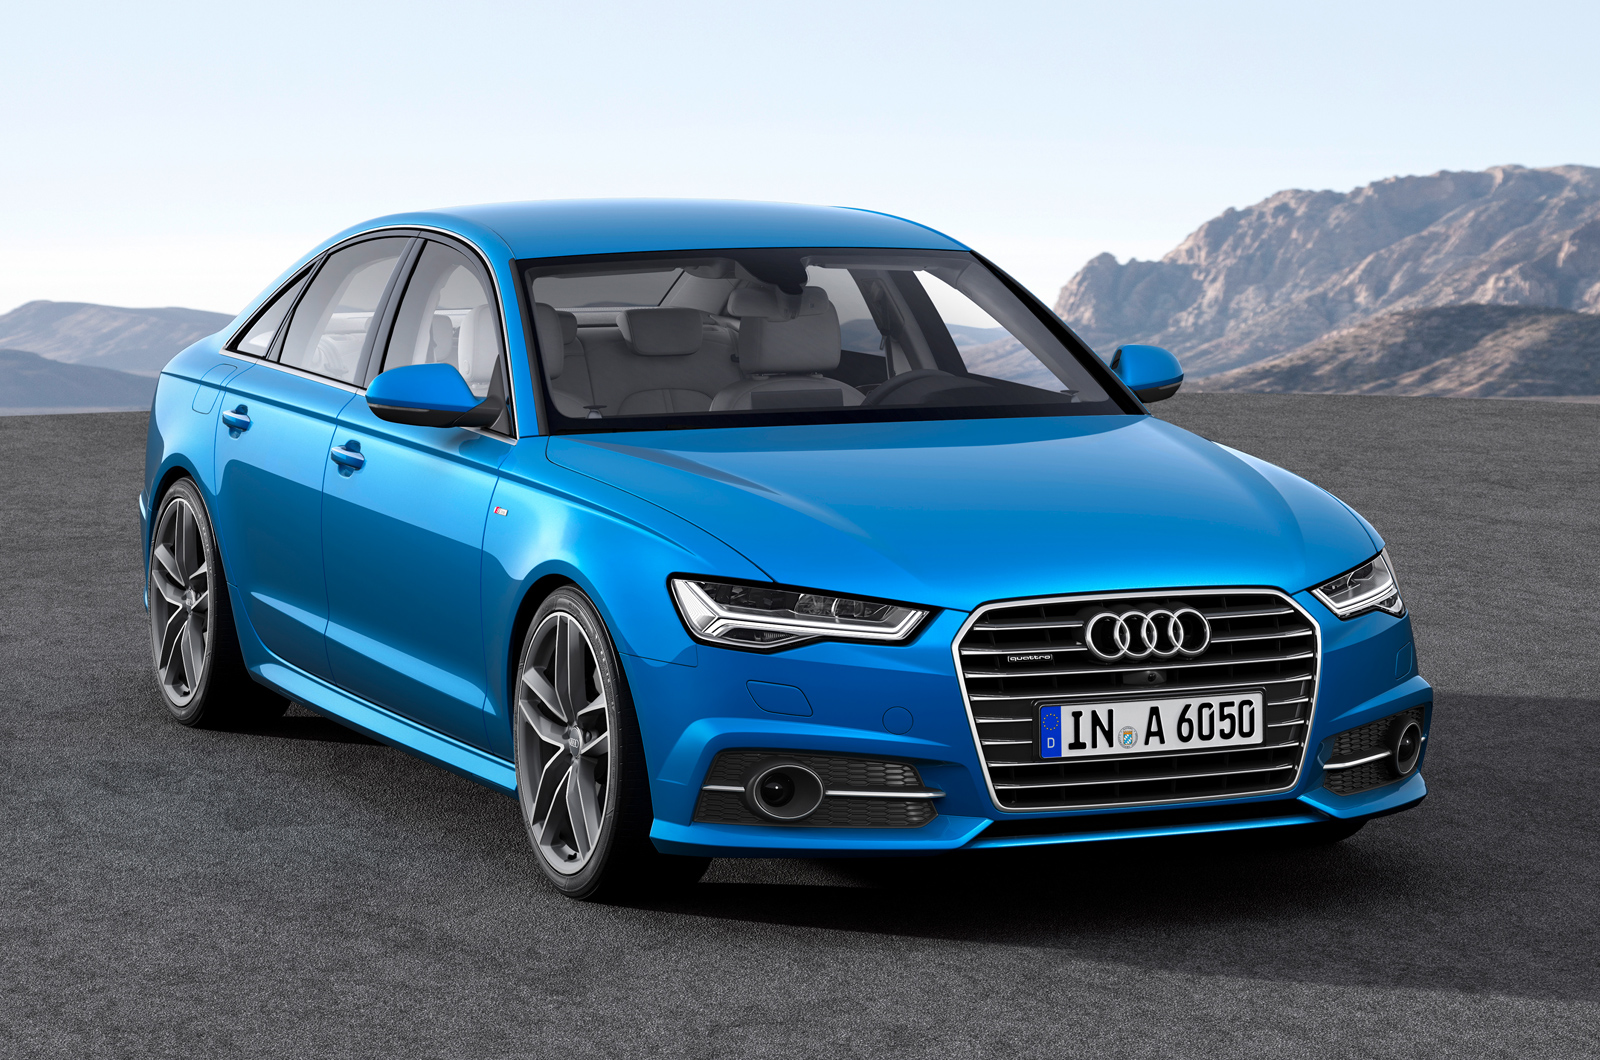 2014 audi a6 avant 2 0 tdi ultra first drive review autocar. Black Bedroom Furniture Sets. Home Design Ideas